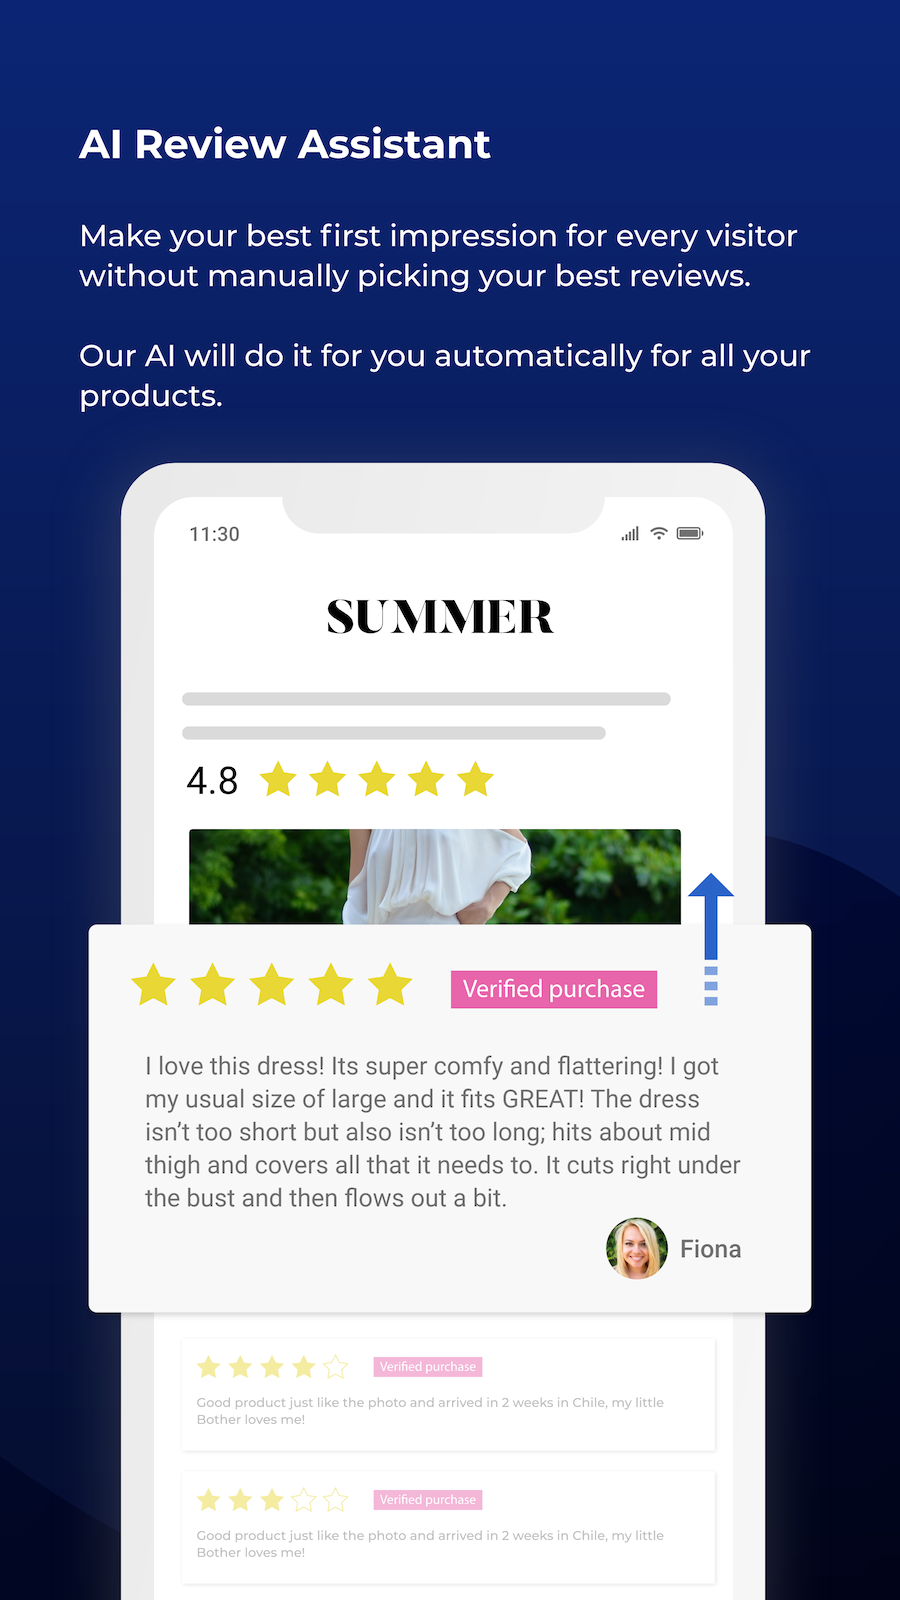 AI review assistant, filter and display only the best reviews